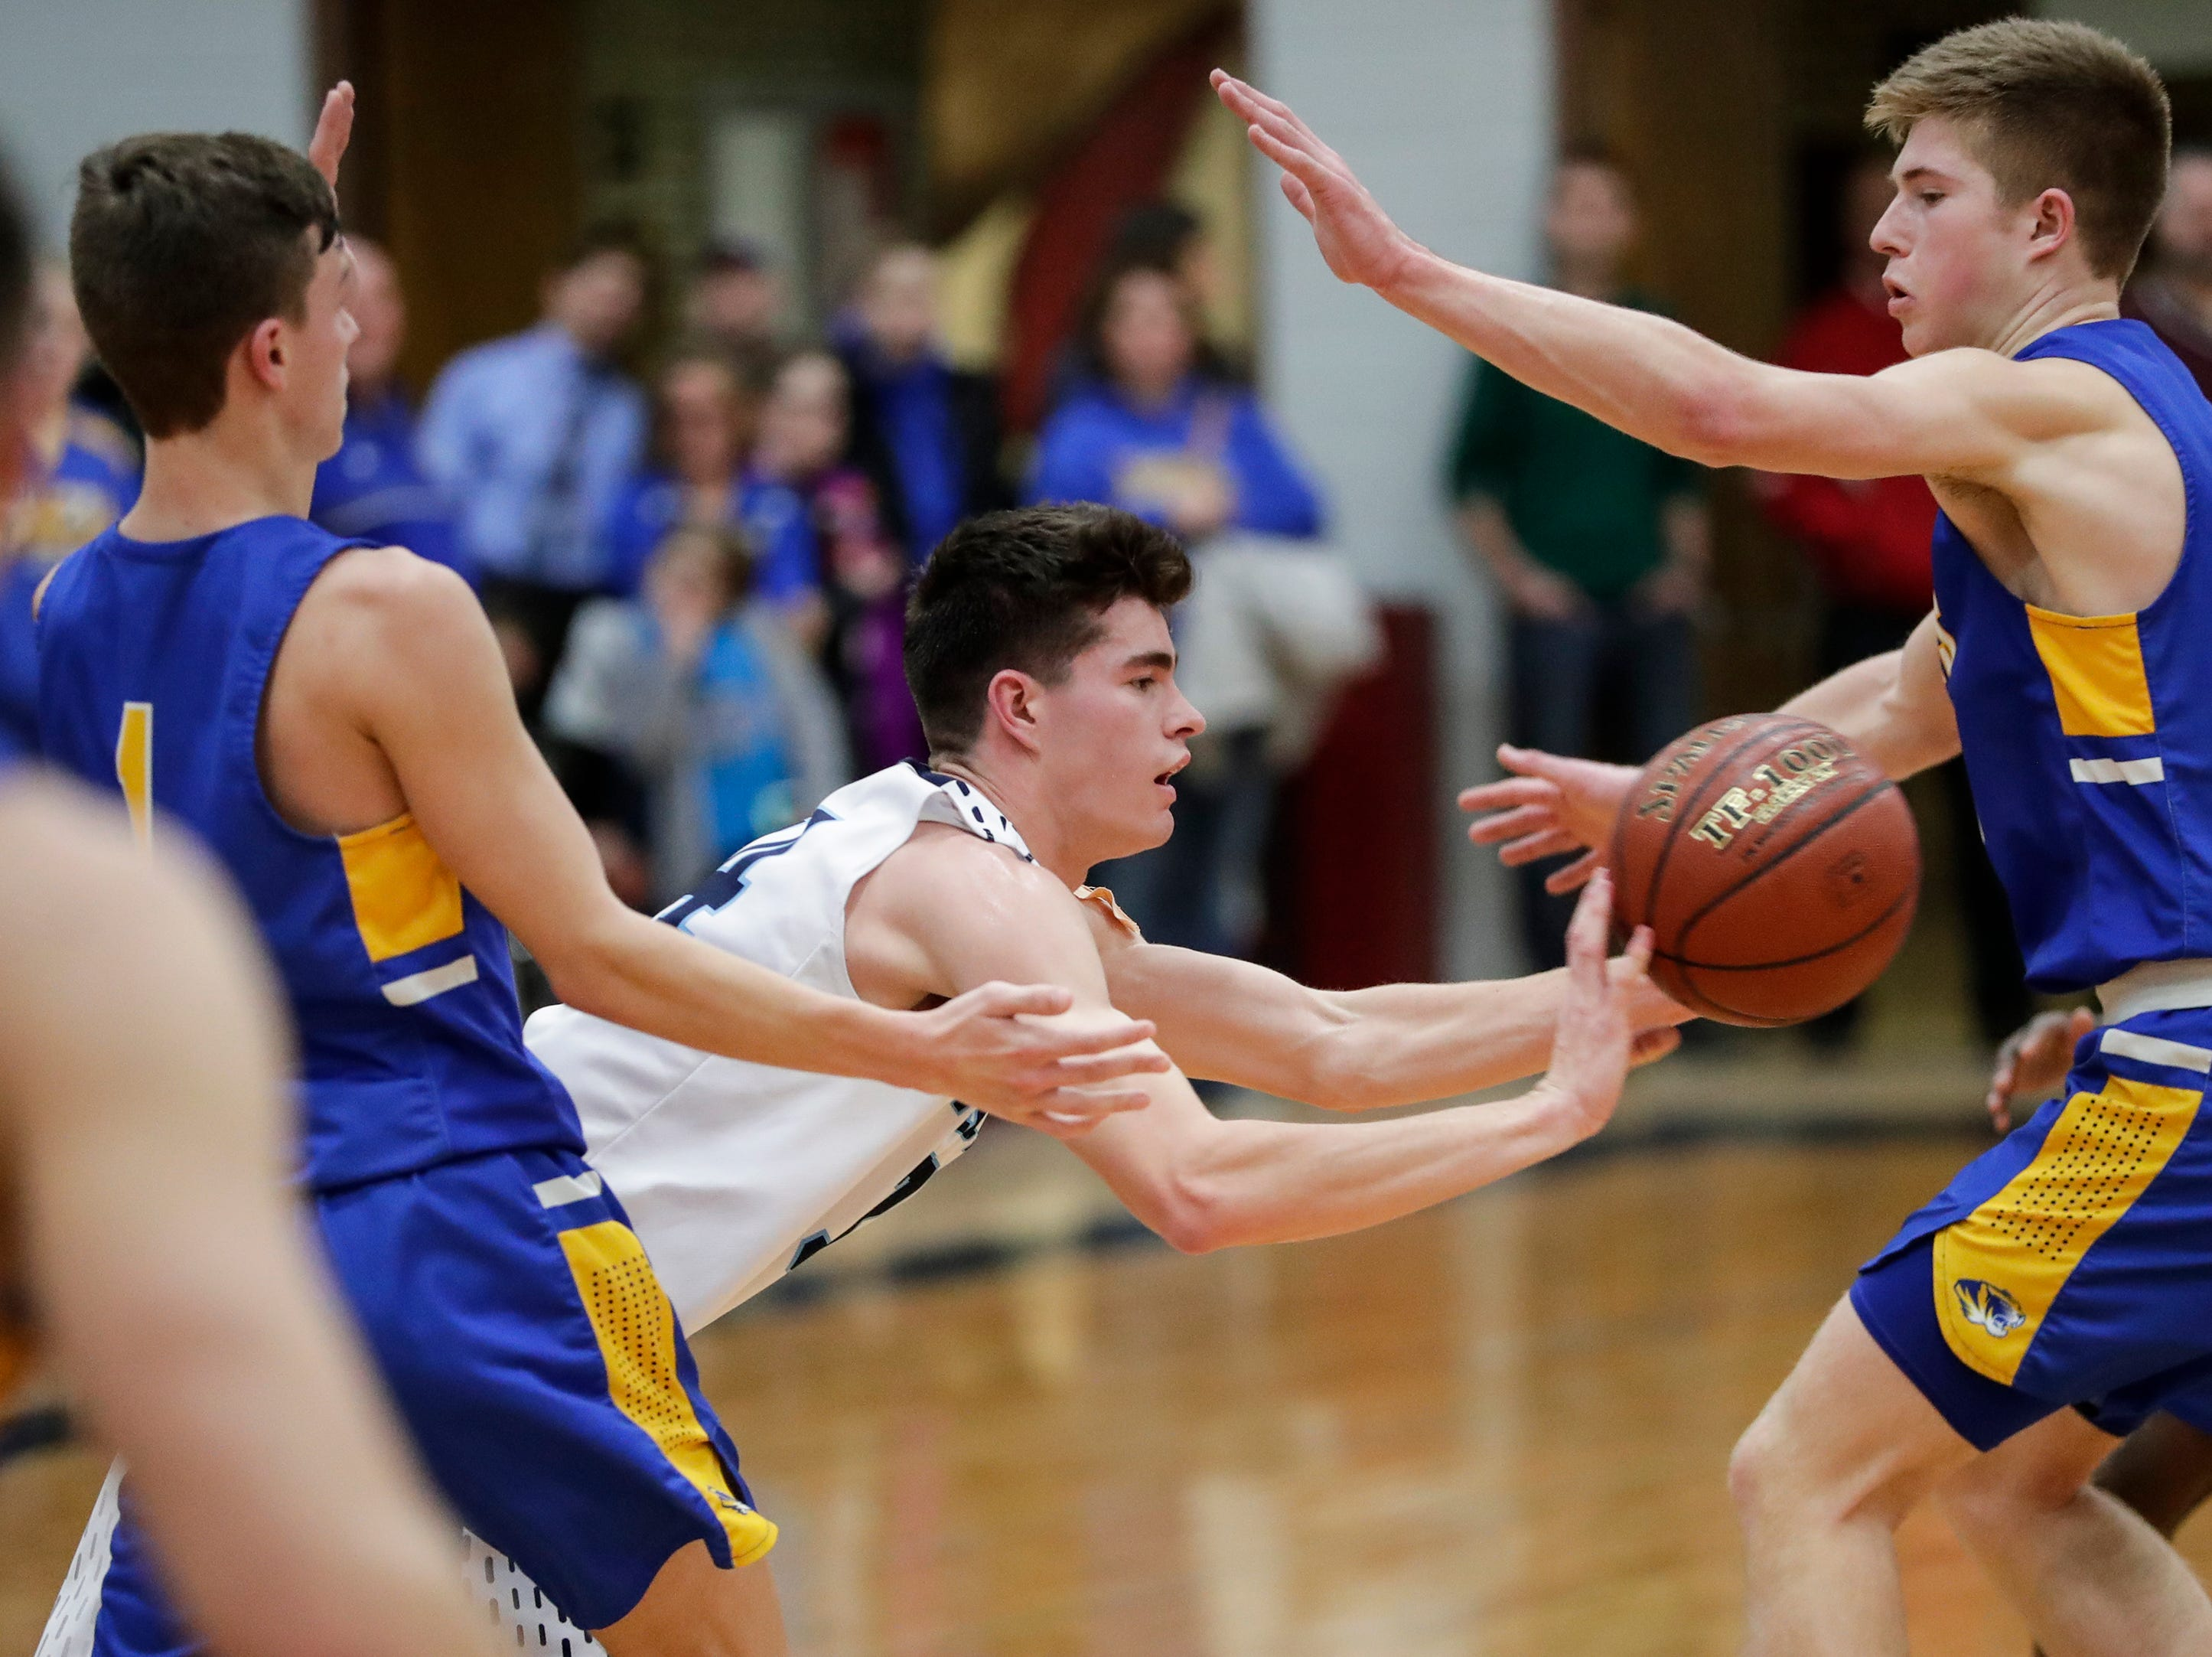 Roncalli's Ian Behringer (34) shovels off a pass against Howards Grove in a WIAA Division 4 sectional semifinal at New Holstein High School Thursday, March 7, 2019, in New Holstein, Wis. Joshua Clark/USA TODAY NETWORK-Wisconsin